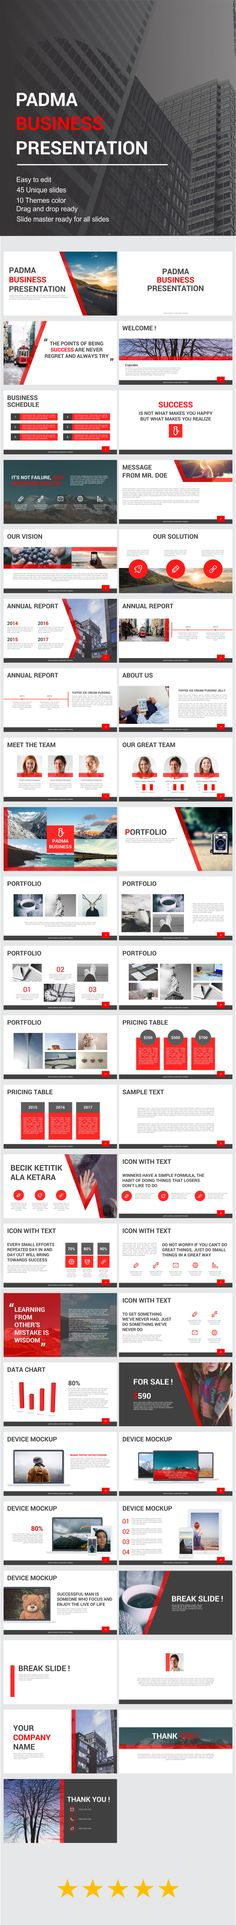 23 best business presentation templates images on pinterest padma business presentation templateflexible clean beautiful creative simple uniquescalable powerpoint templatel element accmission Choice Image